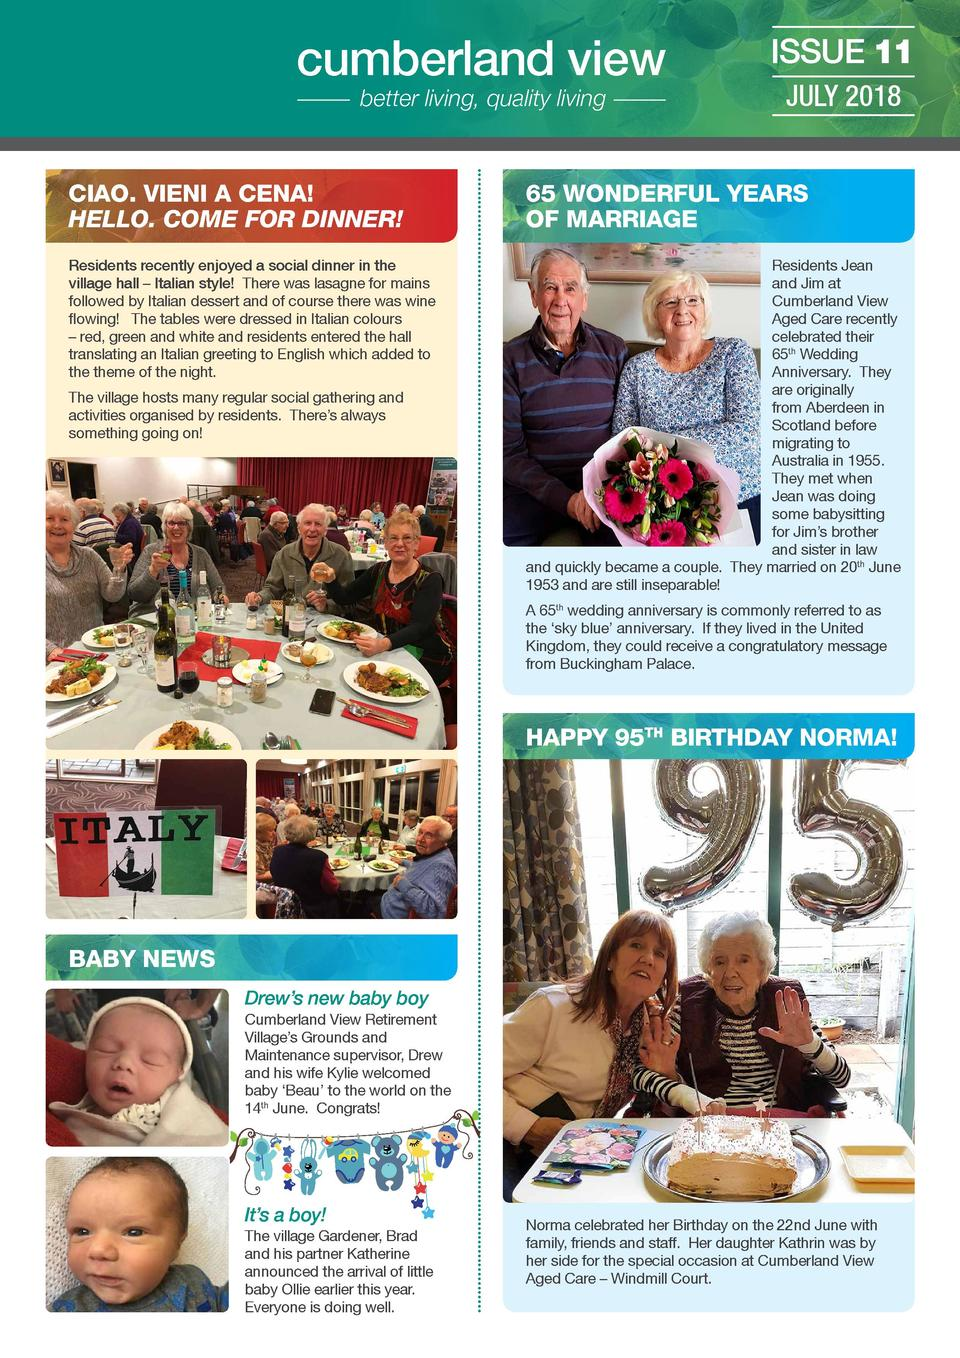 cumberland view better living, quality living  ISSUE 11 JULY 2018  CIAO. VIENI A CENA  HELLO. COME FOR DINNER   65 WONDERF...